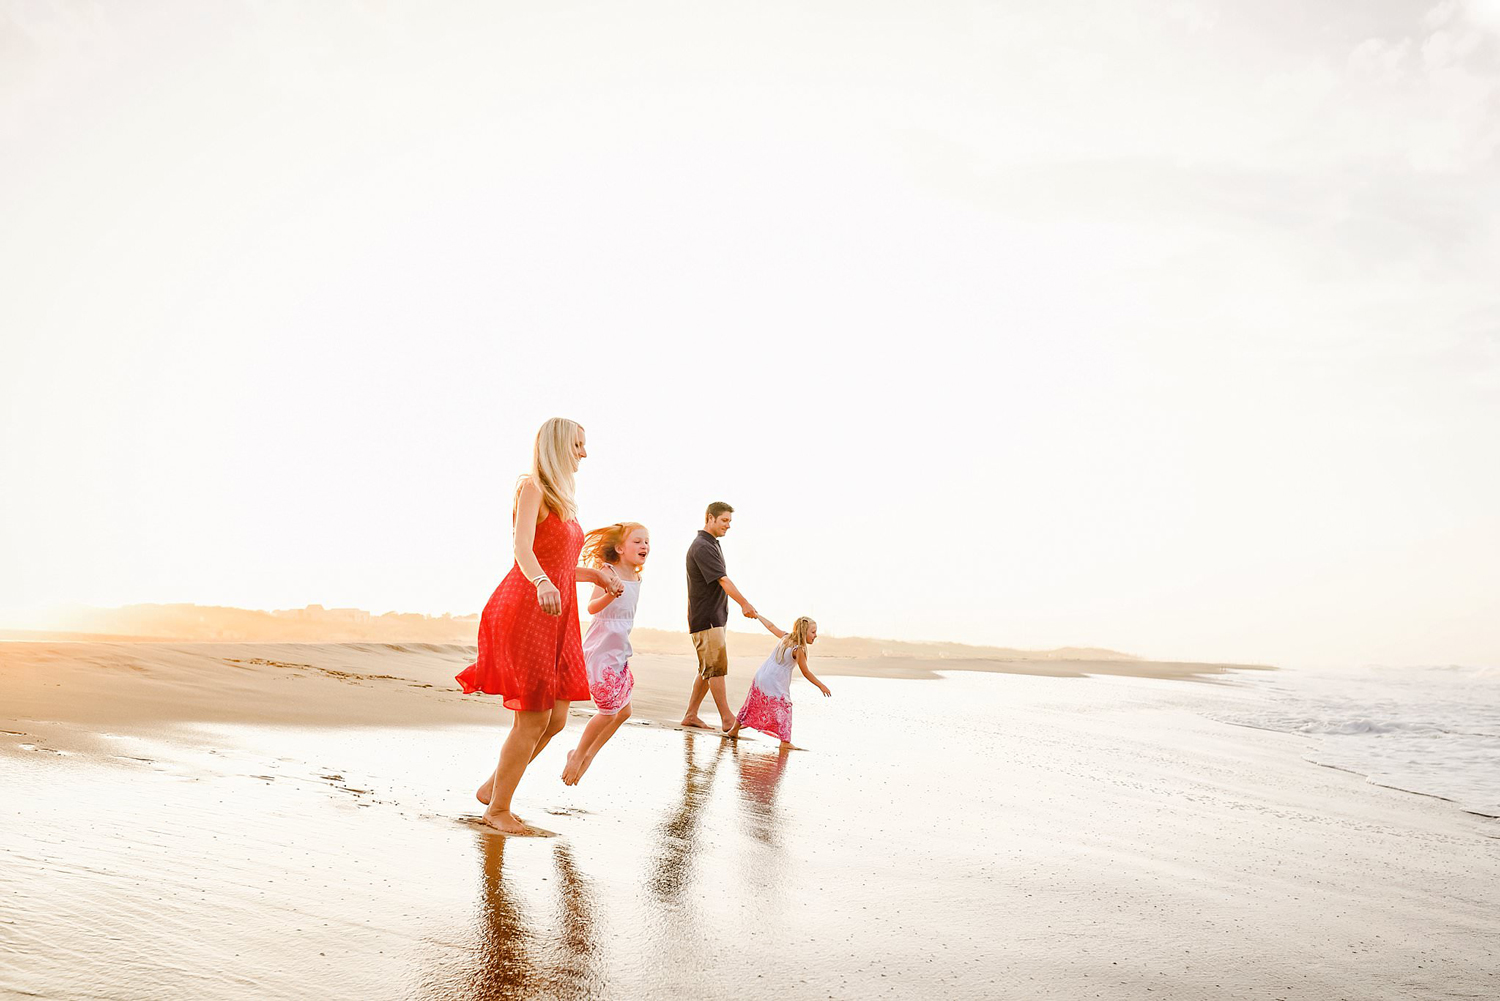 virginia-beach-family-lifestyle-photoshoot-at-sunset-melissa-bliss-photography.jpg